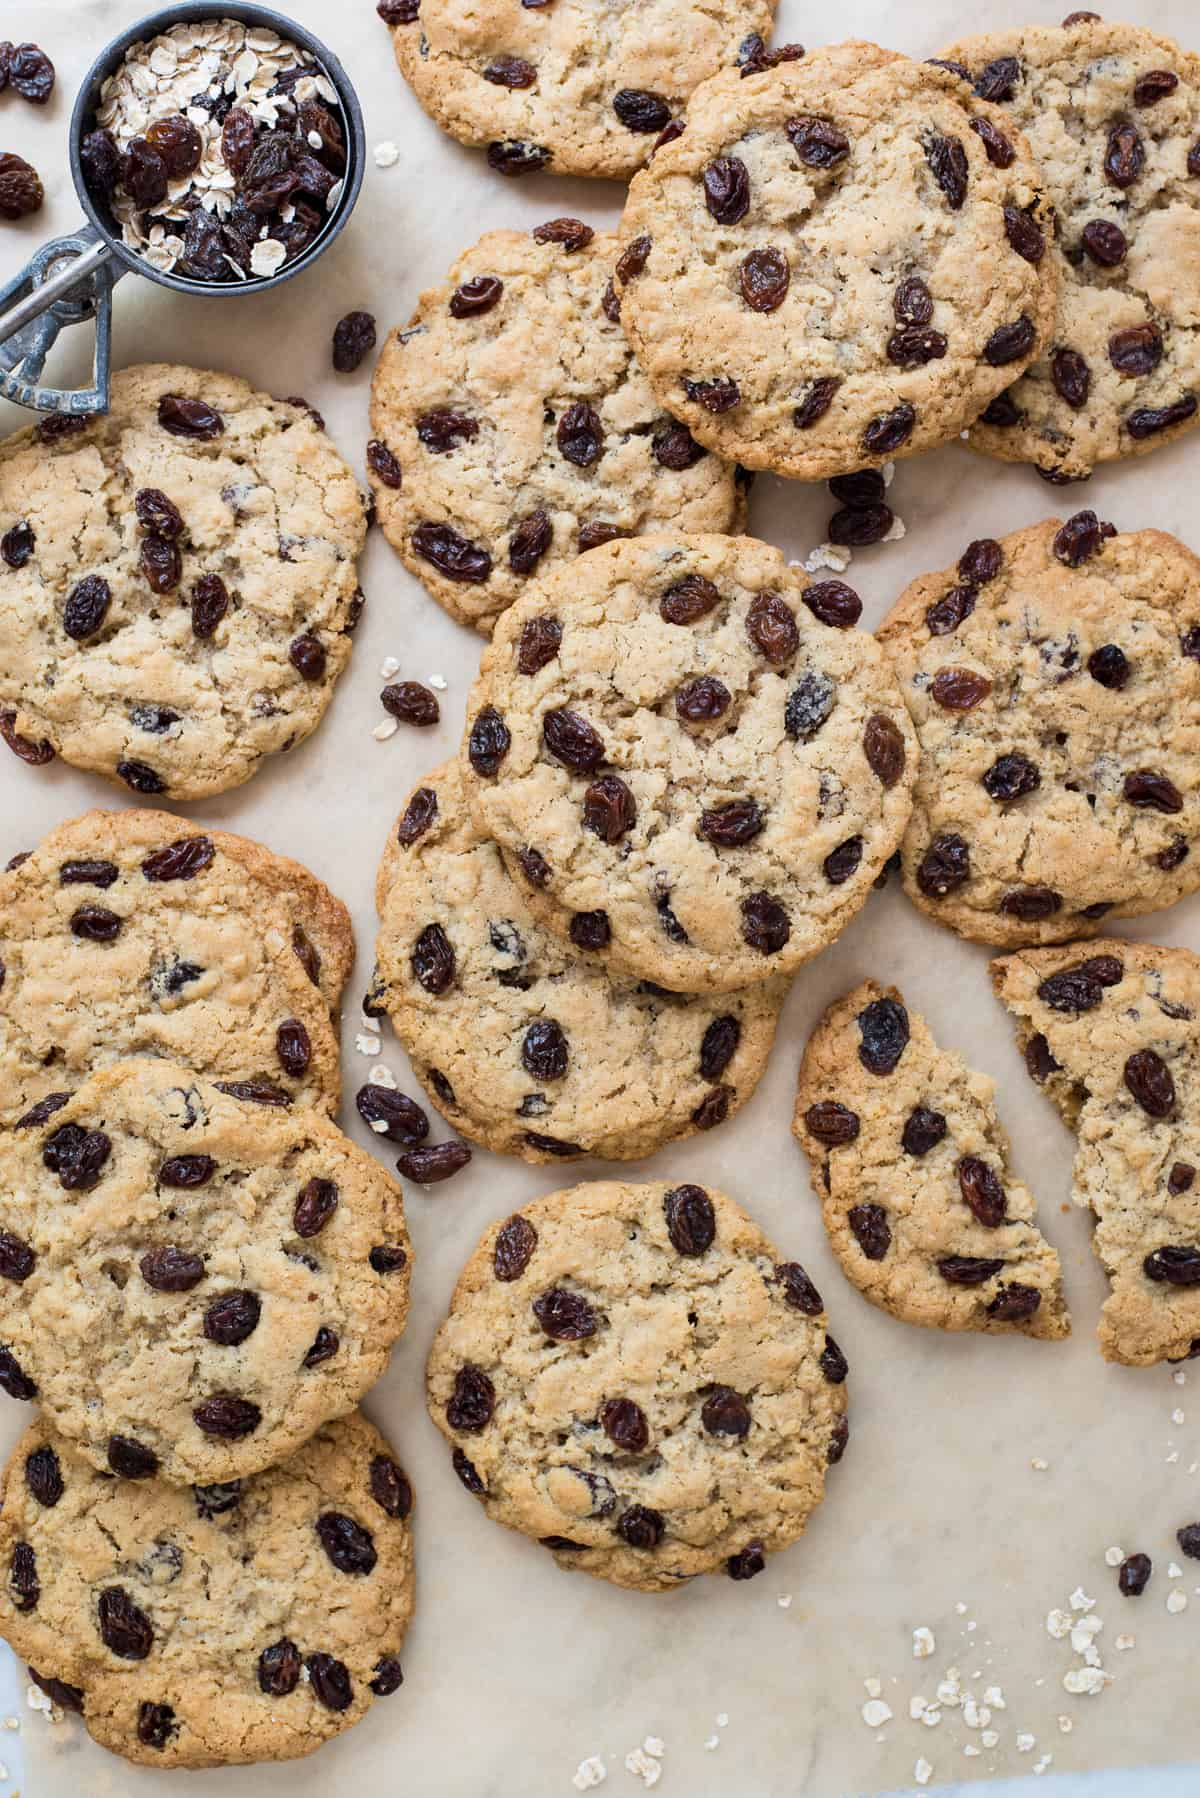 oatmeal raisin cookies on brown parchment paper with raisins and oatmeal spread around